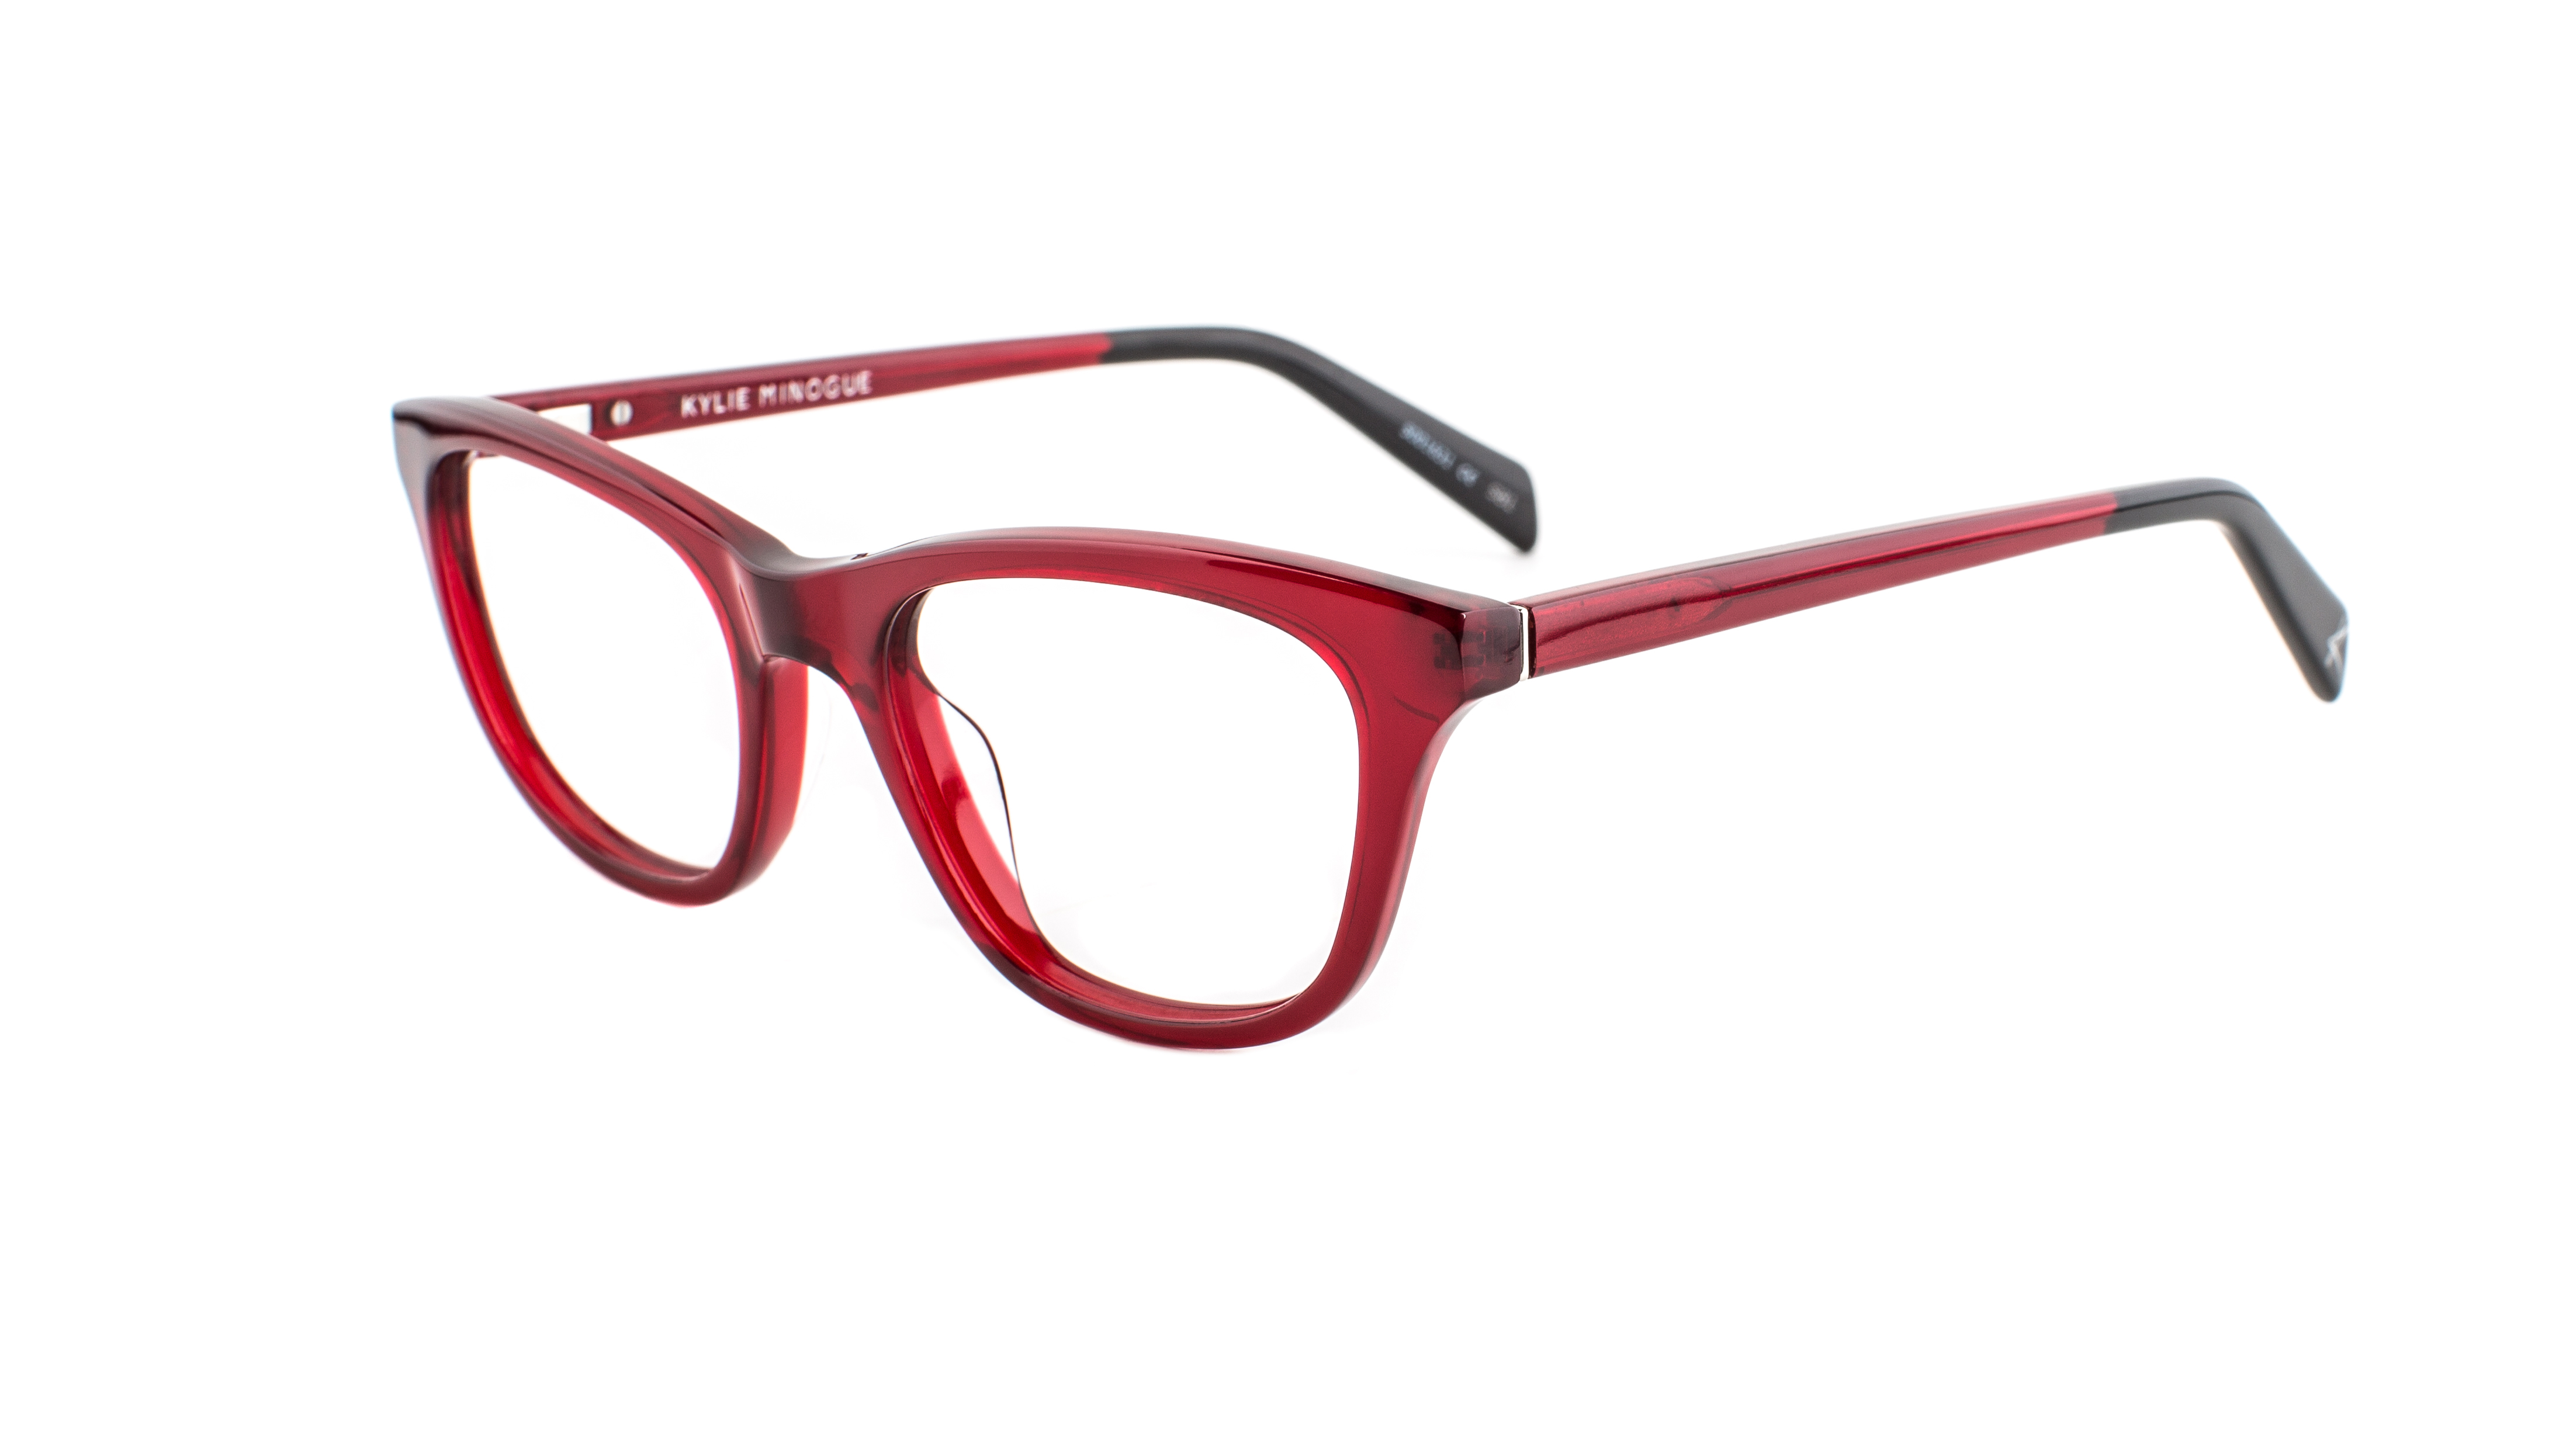 Kylie Minogue Eyewear_Kylie 01_SKU 30520103_RRP 2 pairs from $369 (2)